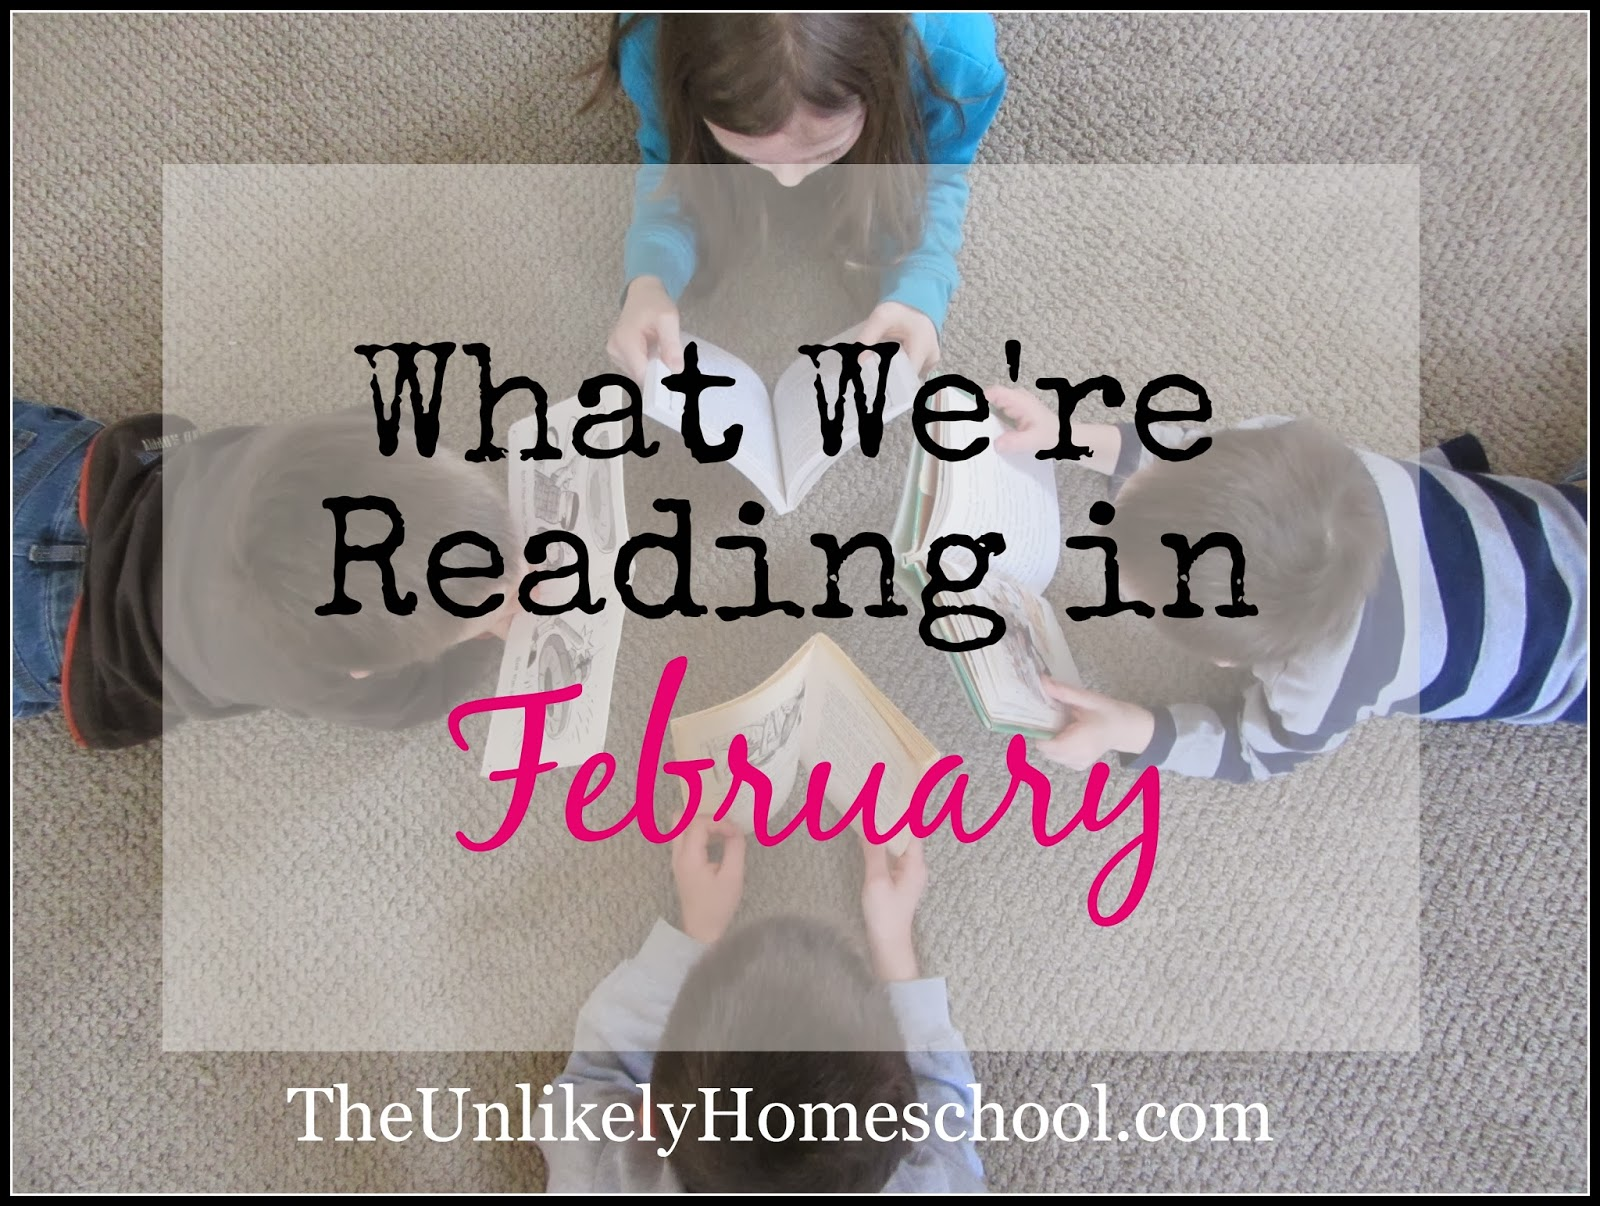 What We're Reading in February-The Unlikely Homeschool